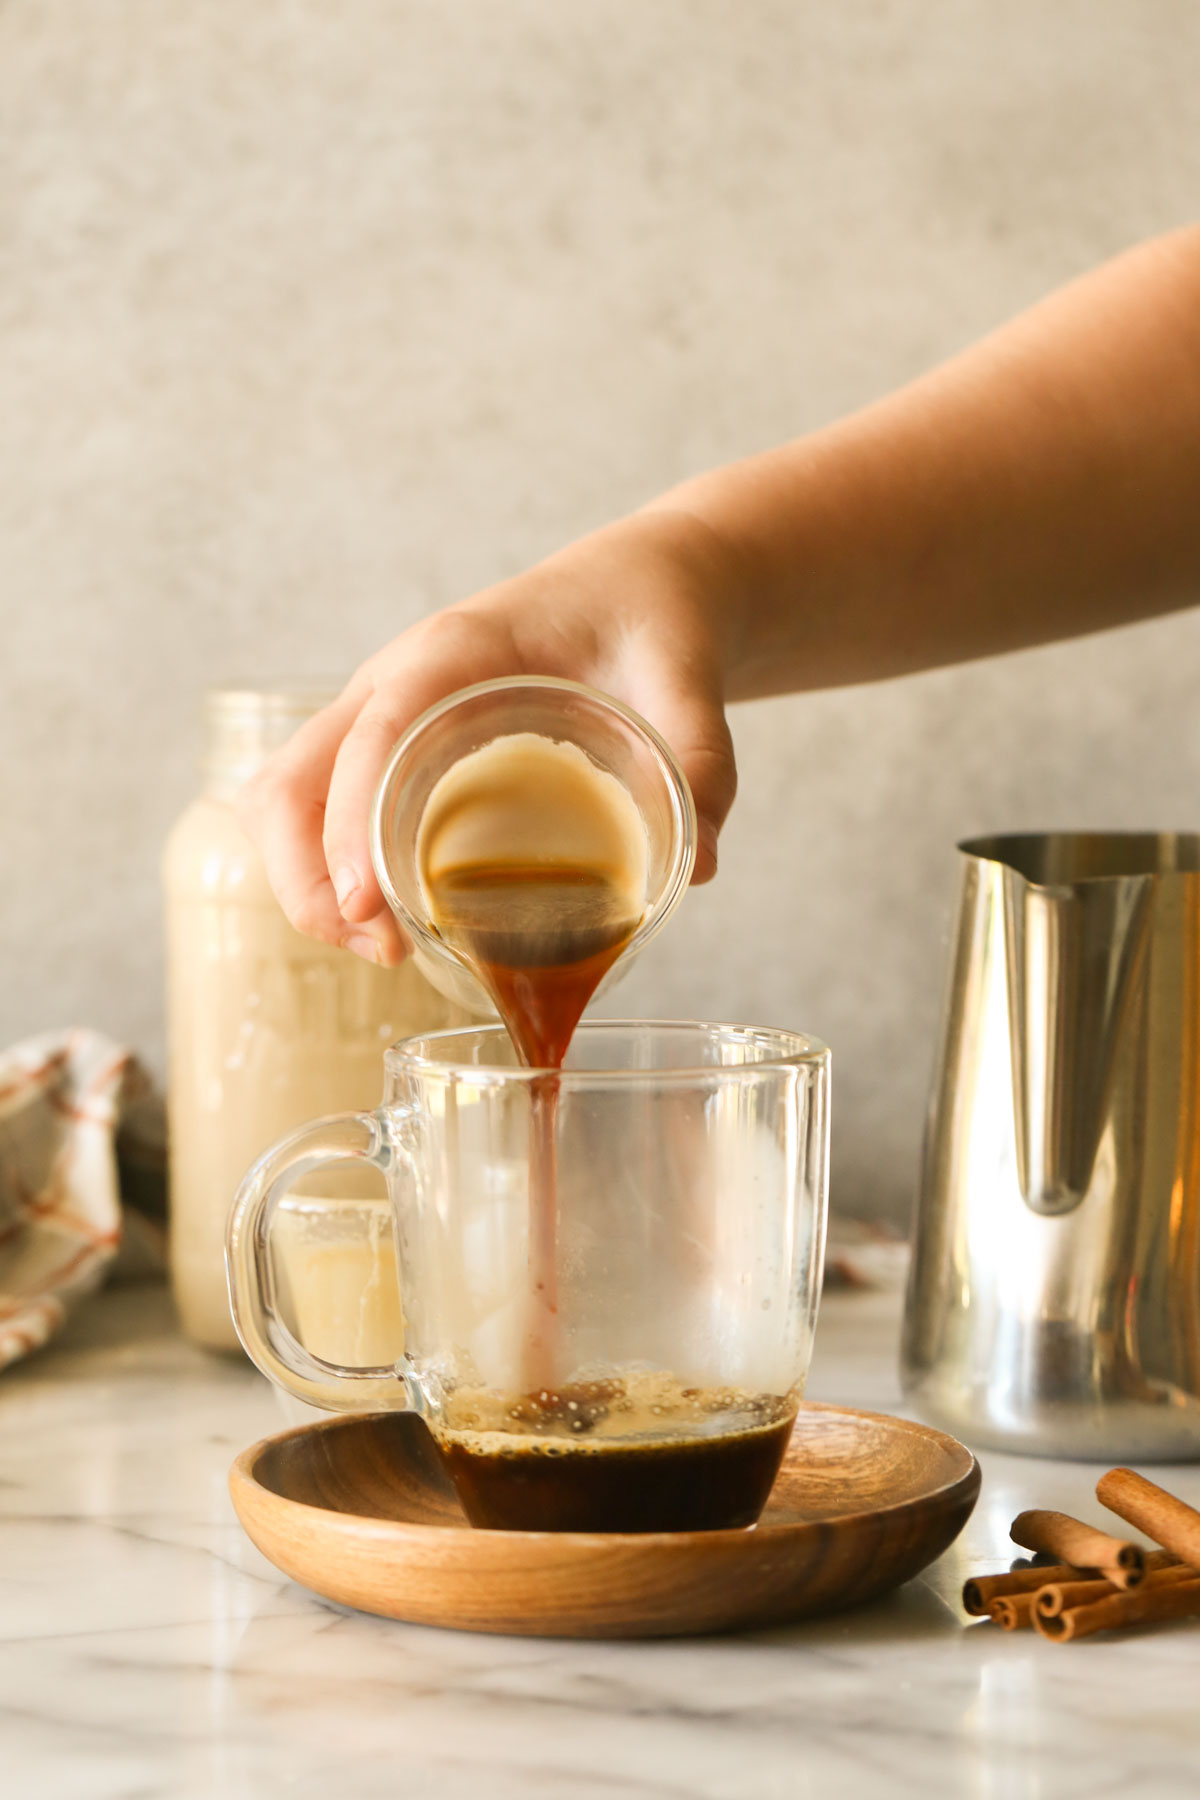 A hand pouring an espresso shot into a glass mug on a wood saucer with cinnamon sticks next to it, with a glass jar of Brown Sugar and Cinnamon Coffee Creamer and a stainless steel pitcher of steamed milk in the background.